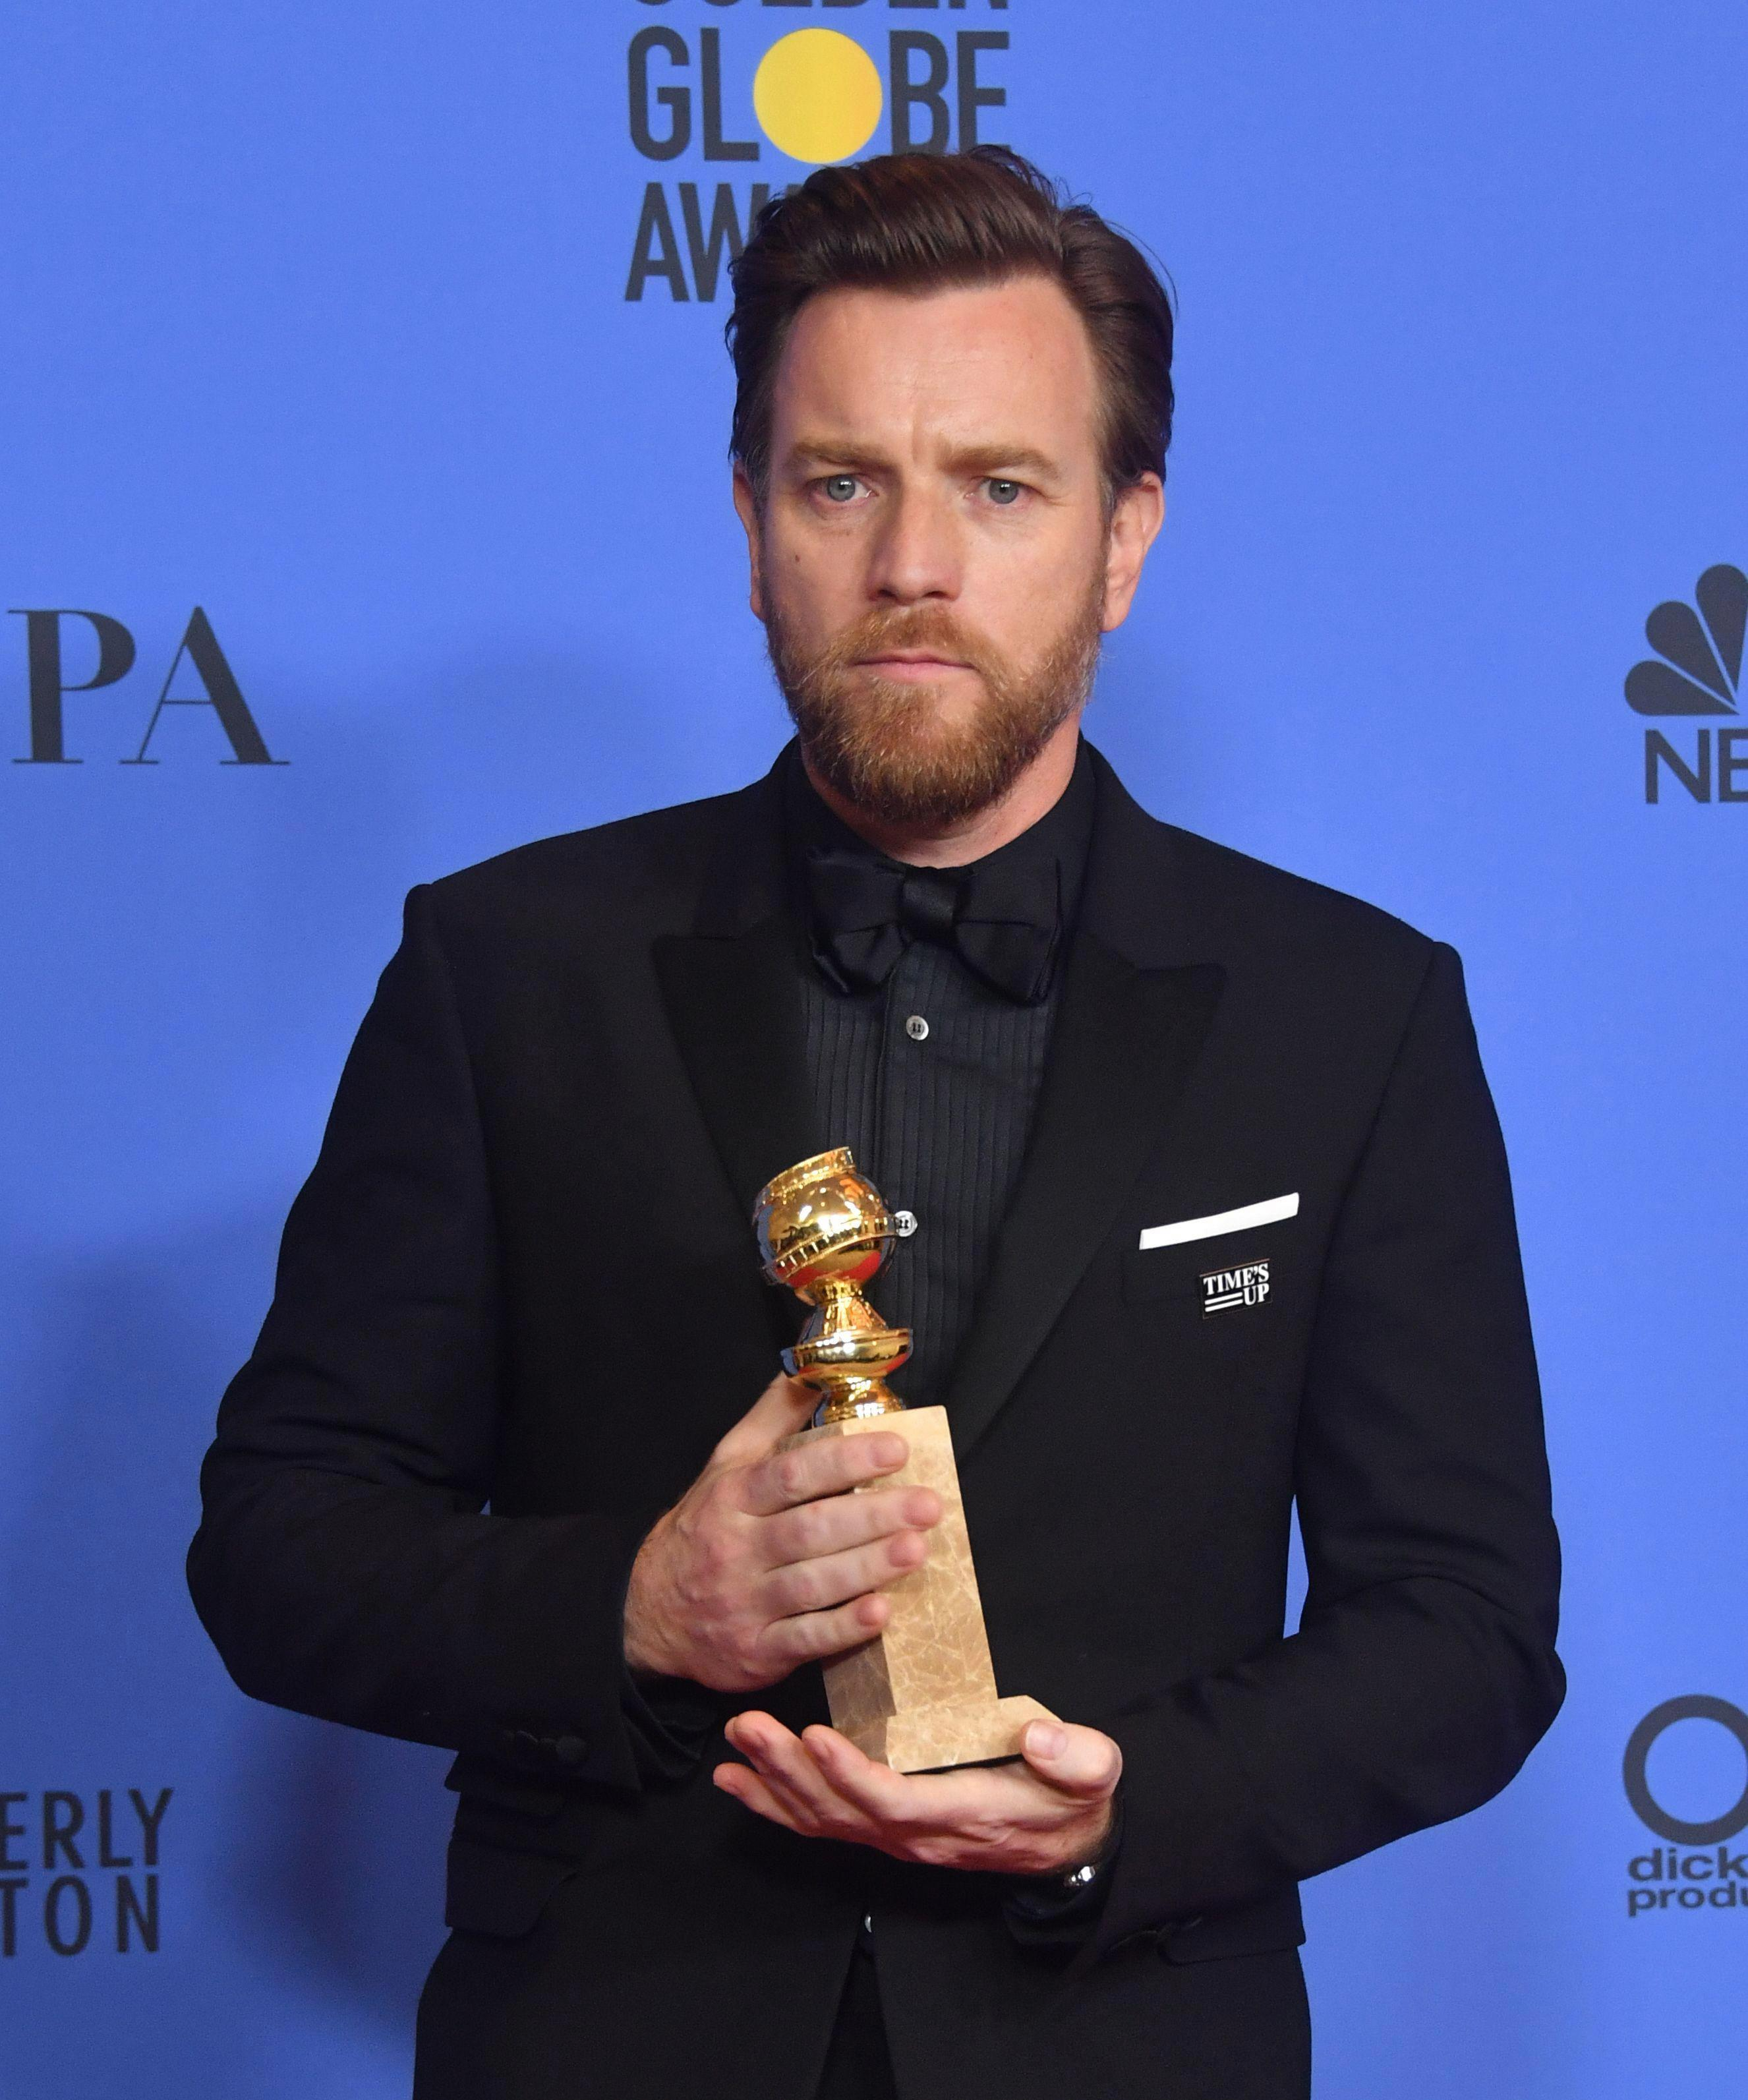 Ewan McGregor thanks estranged wife Eve Mavrakis AND new love Mary Elizabeth Winstead during Golden Globes acceptance speech